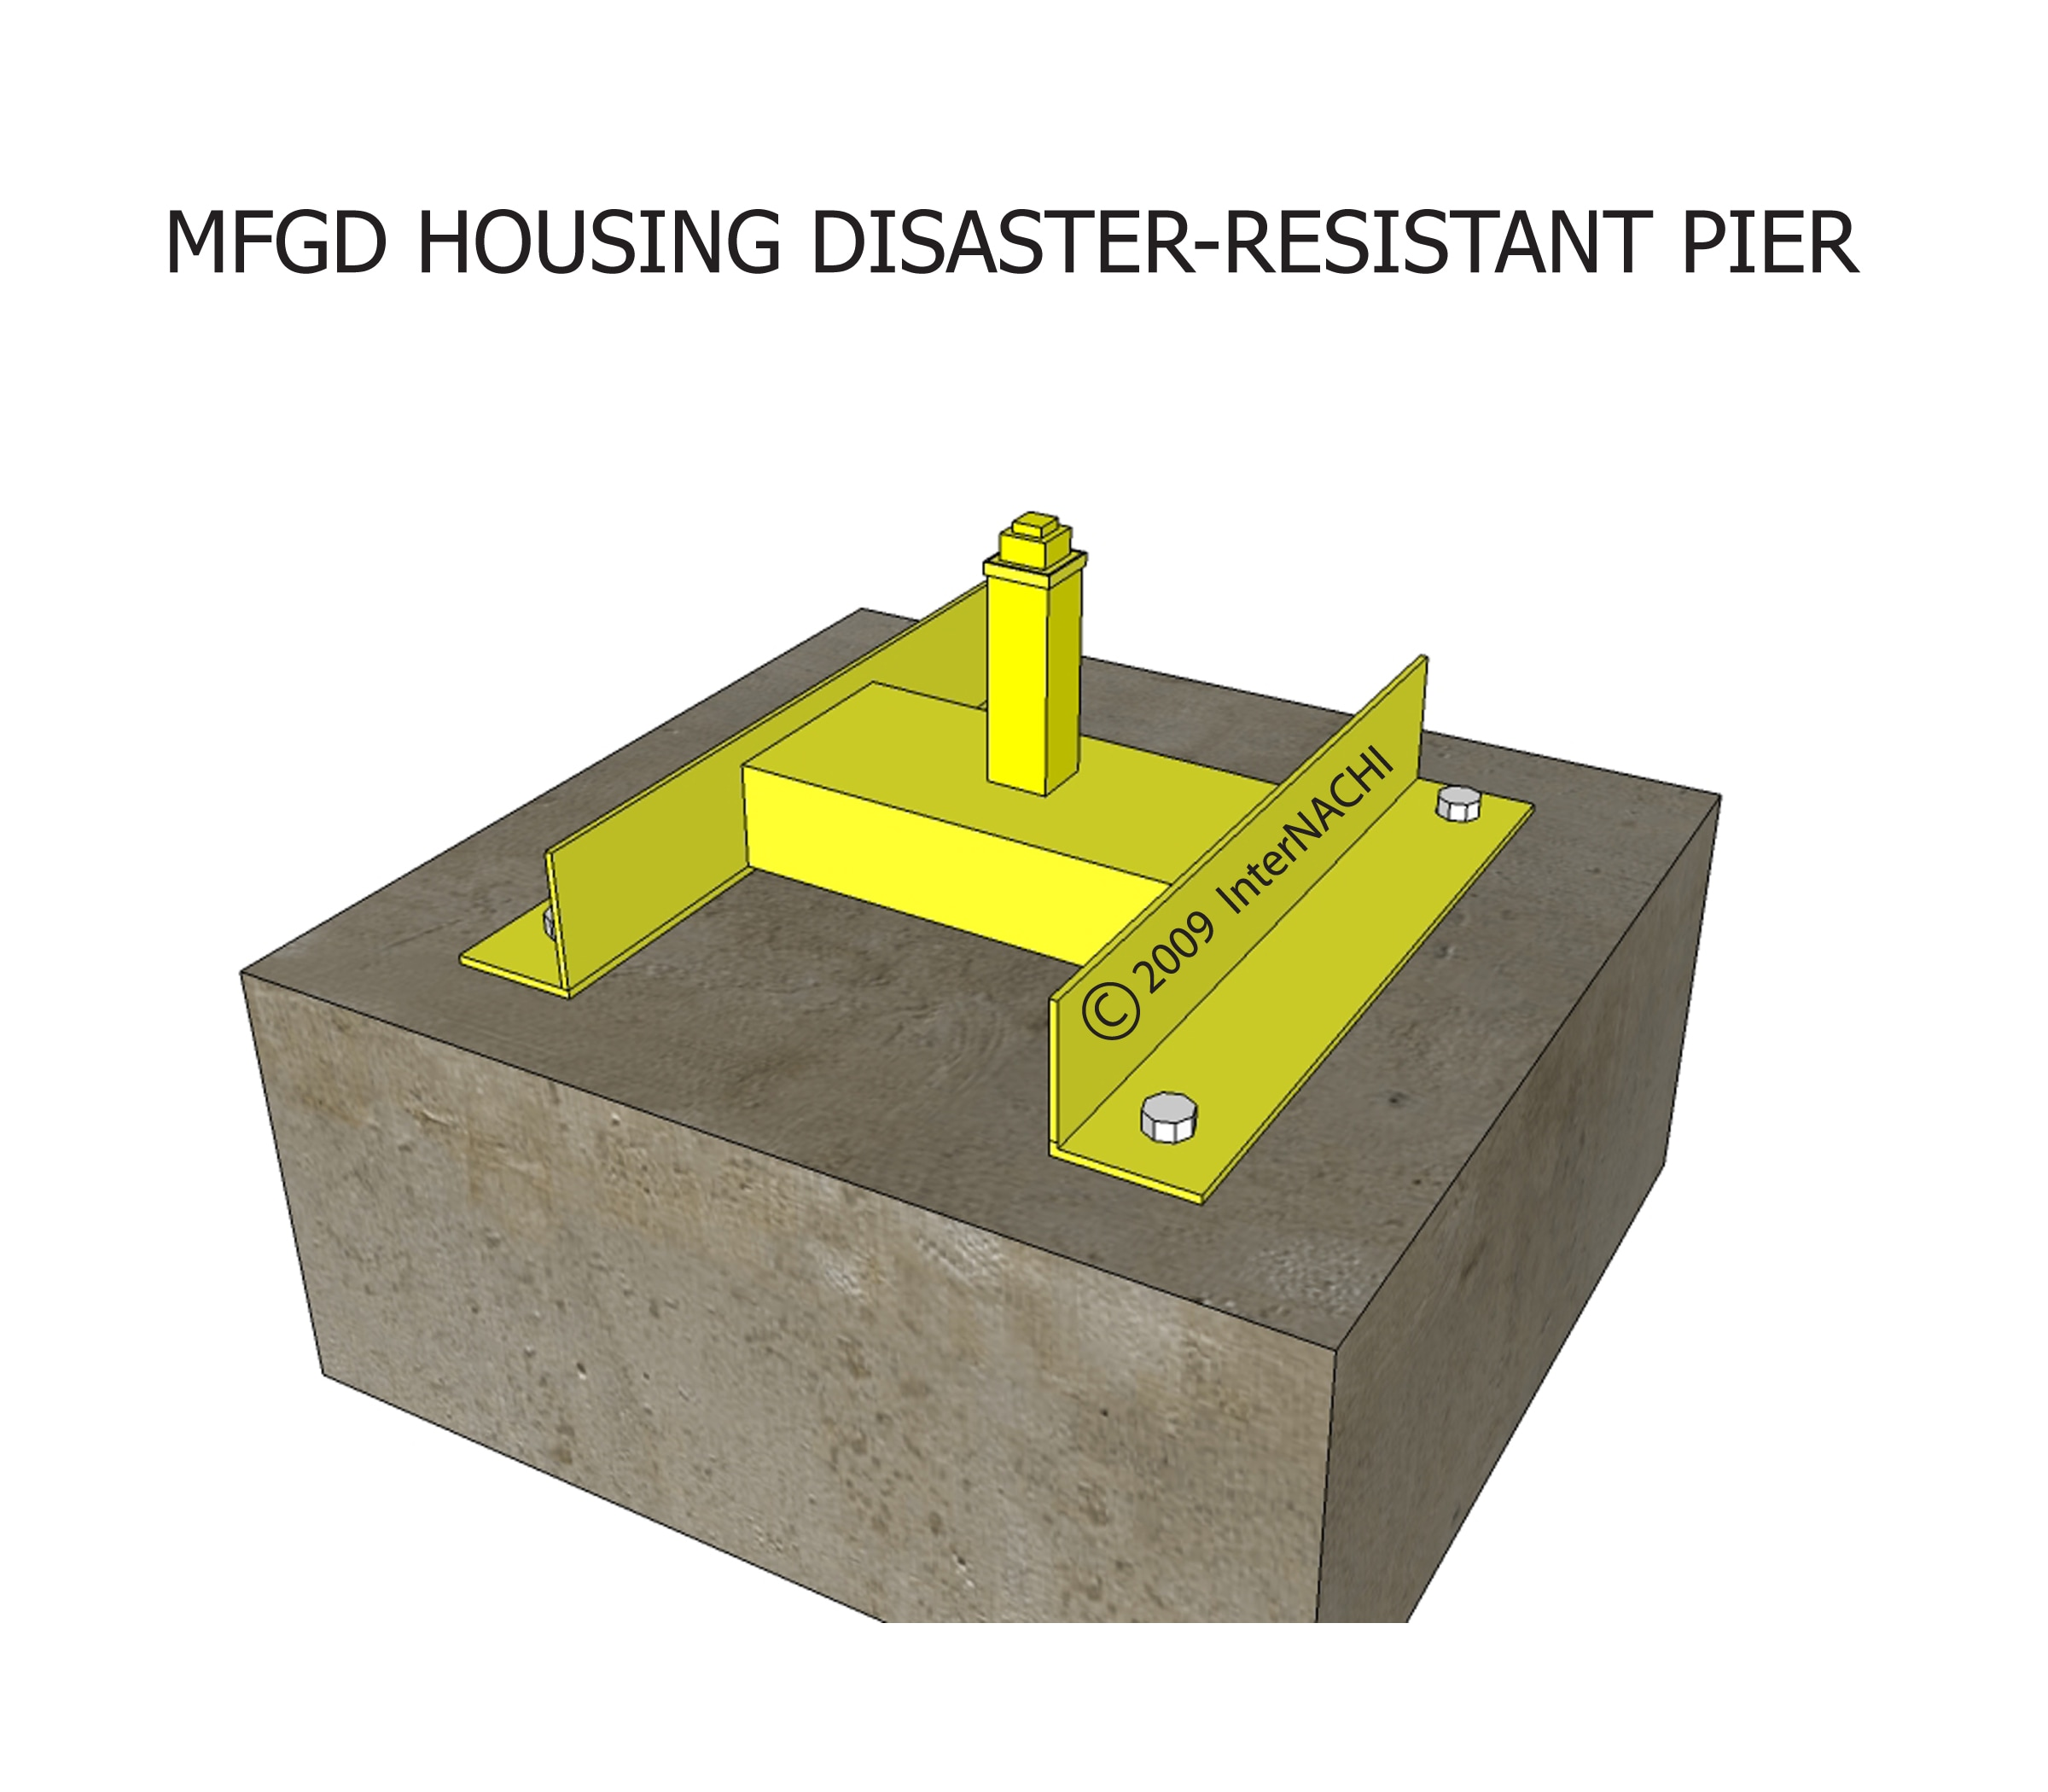 Manufactured housing disaster-resistant pier.